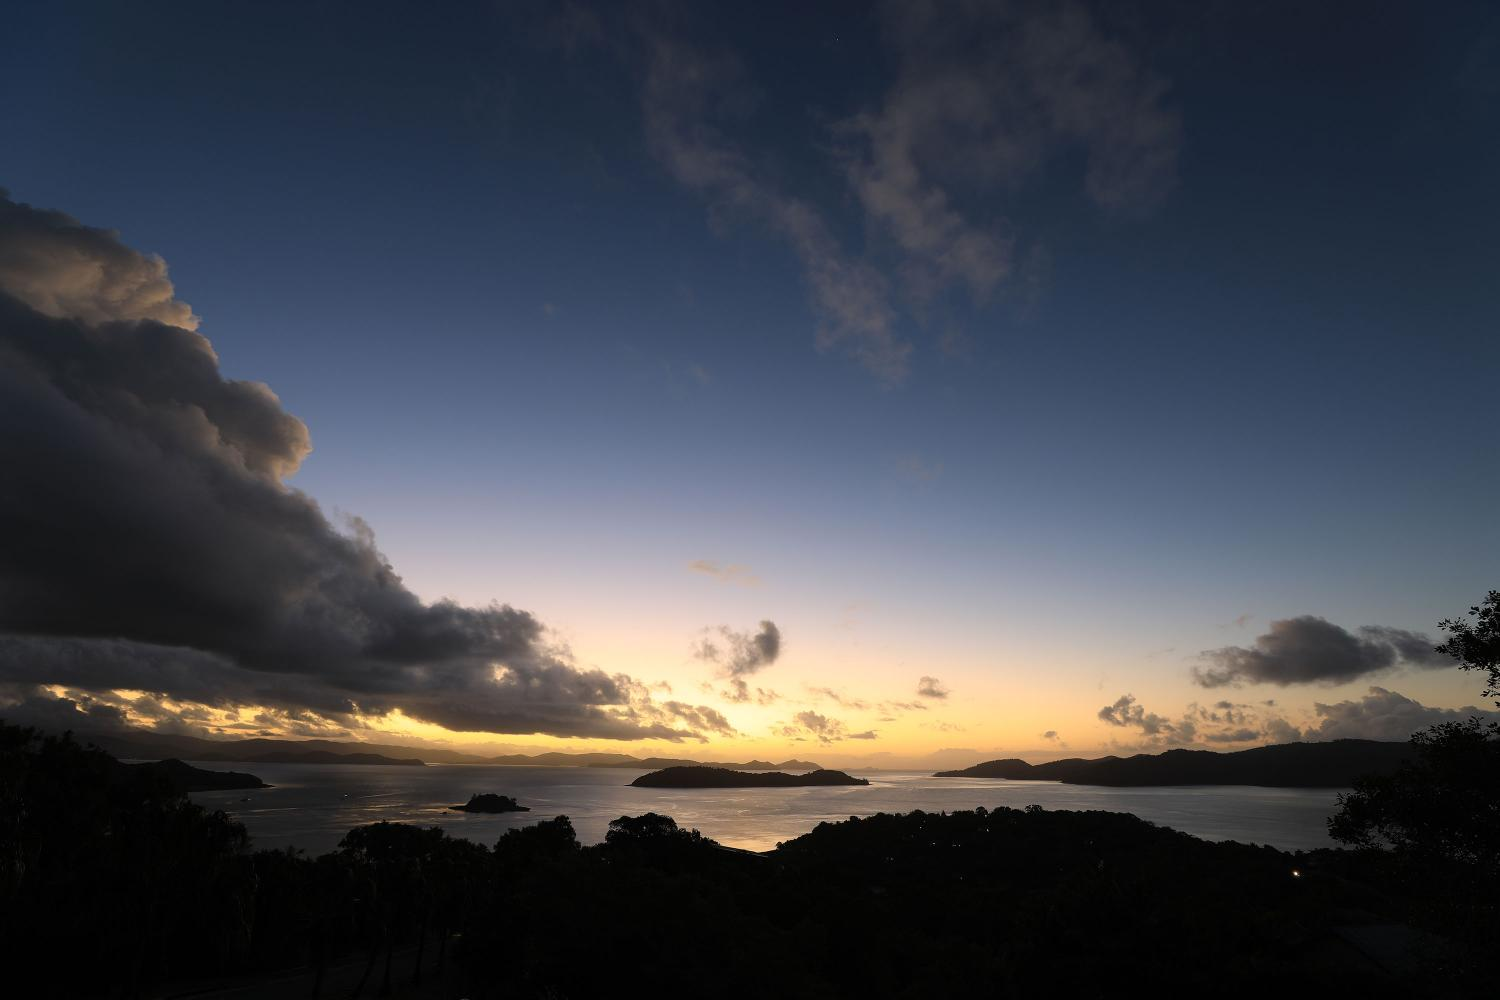 Sun setting behind islands and mountains in the distance, photographed with the Canon EF 16- 35mm f/2.8L III USM Lens